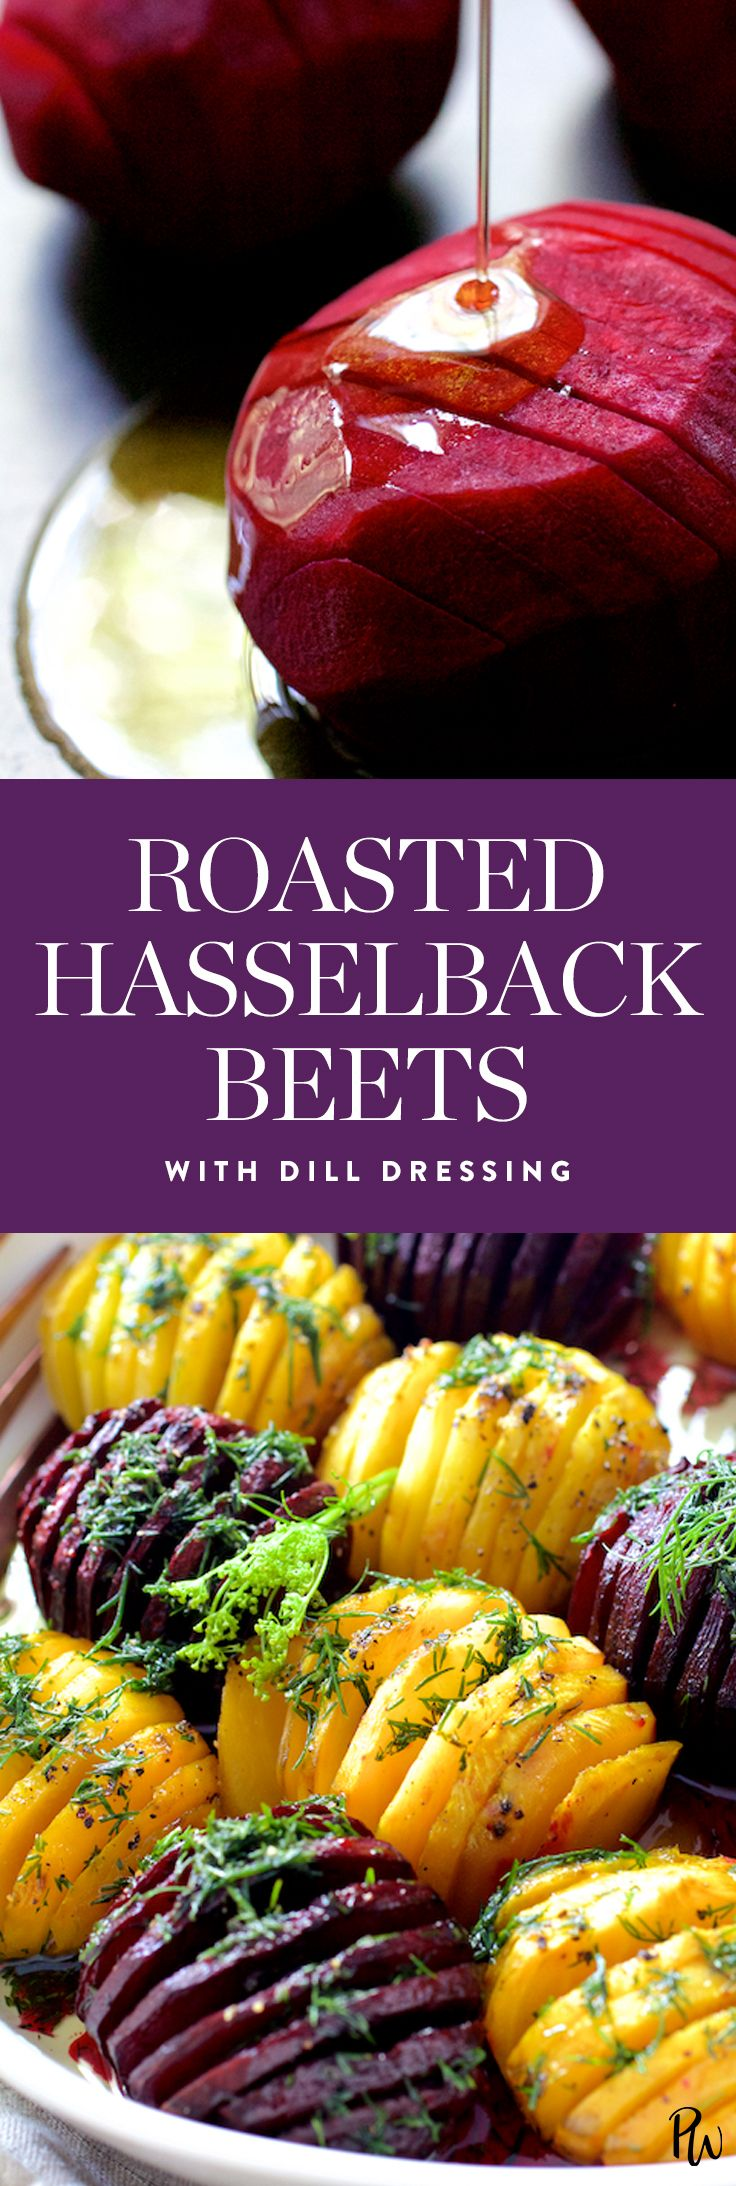 Roasted hasselback beets with dill dressing by From A Chef's Kitchen